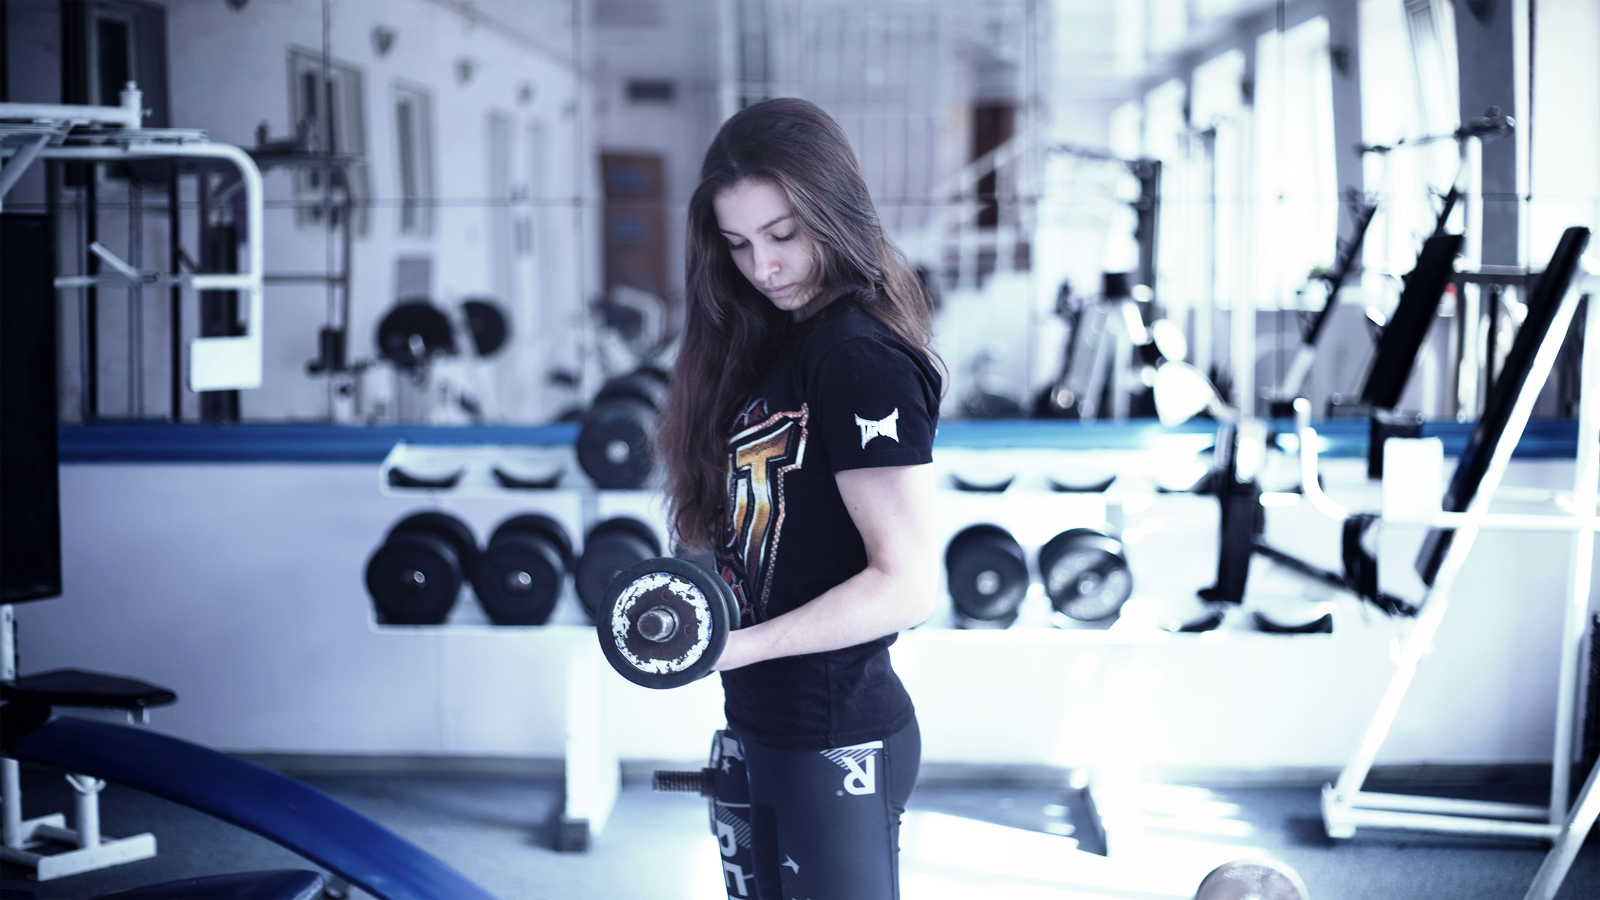 morning workout girl with weights